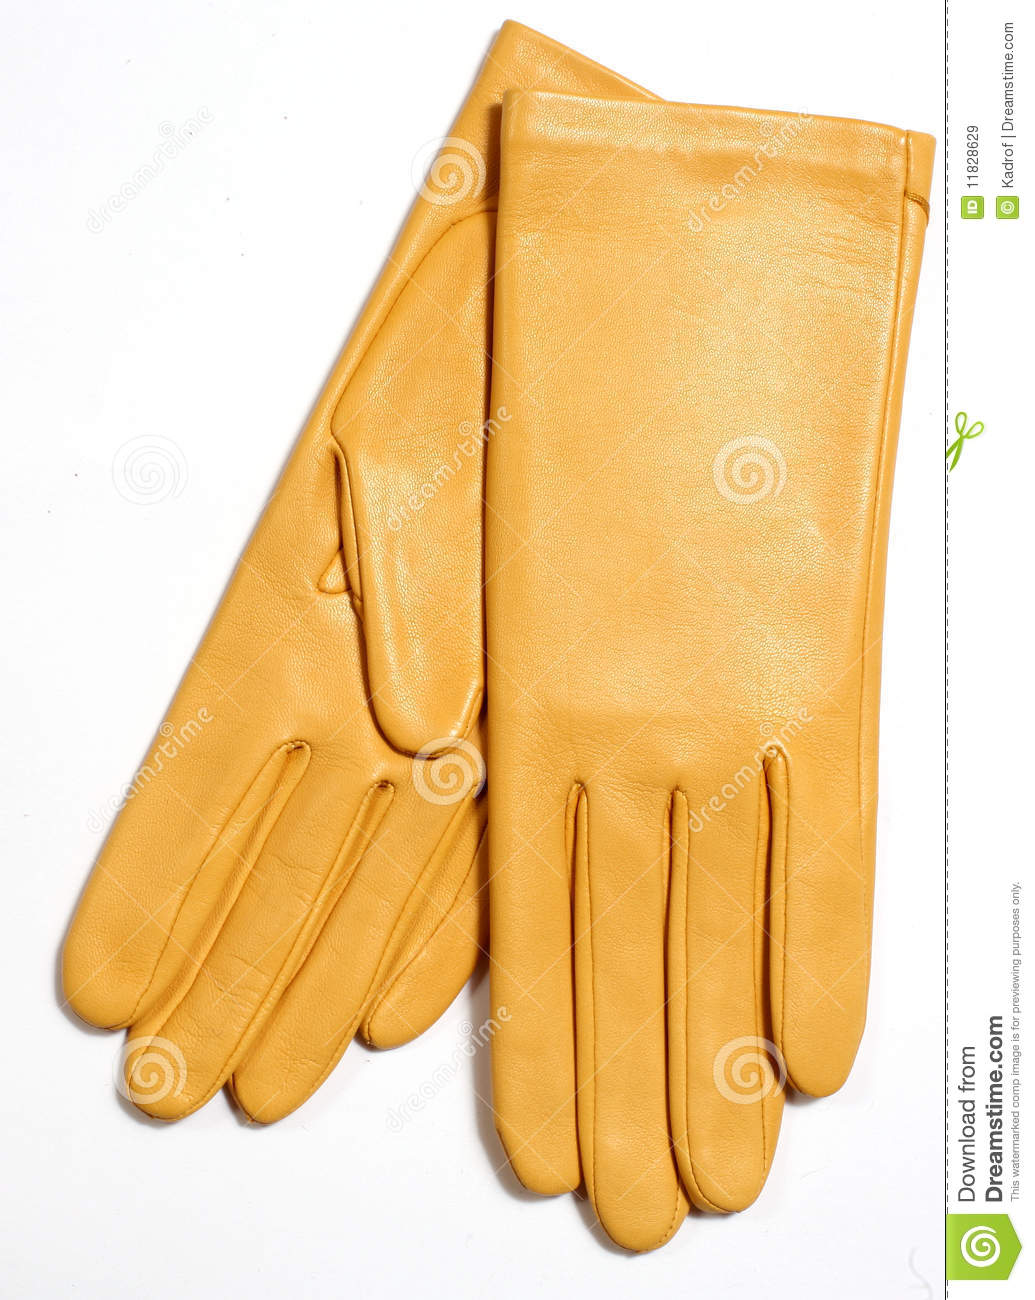 Ladies leather gloves yellow - Yellow Leather Gloves Royalty Free Stock Images Image 11828629